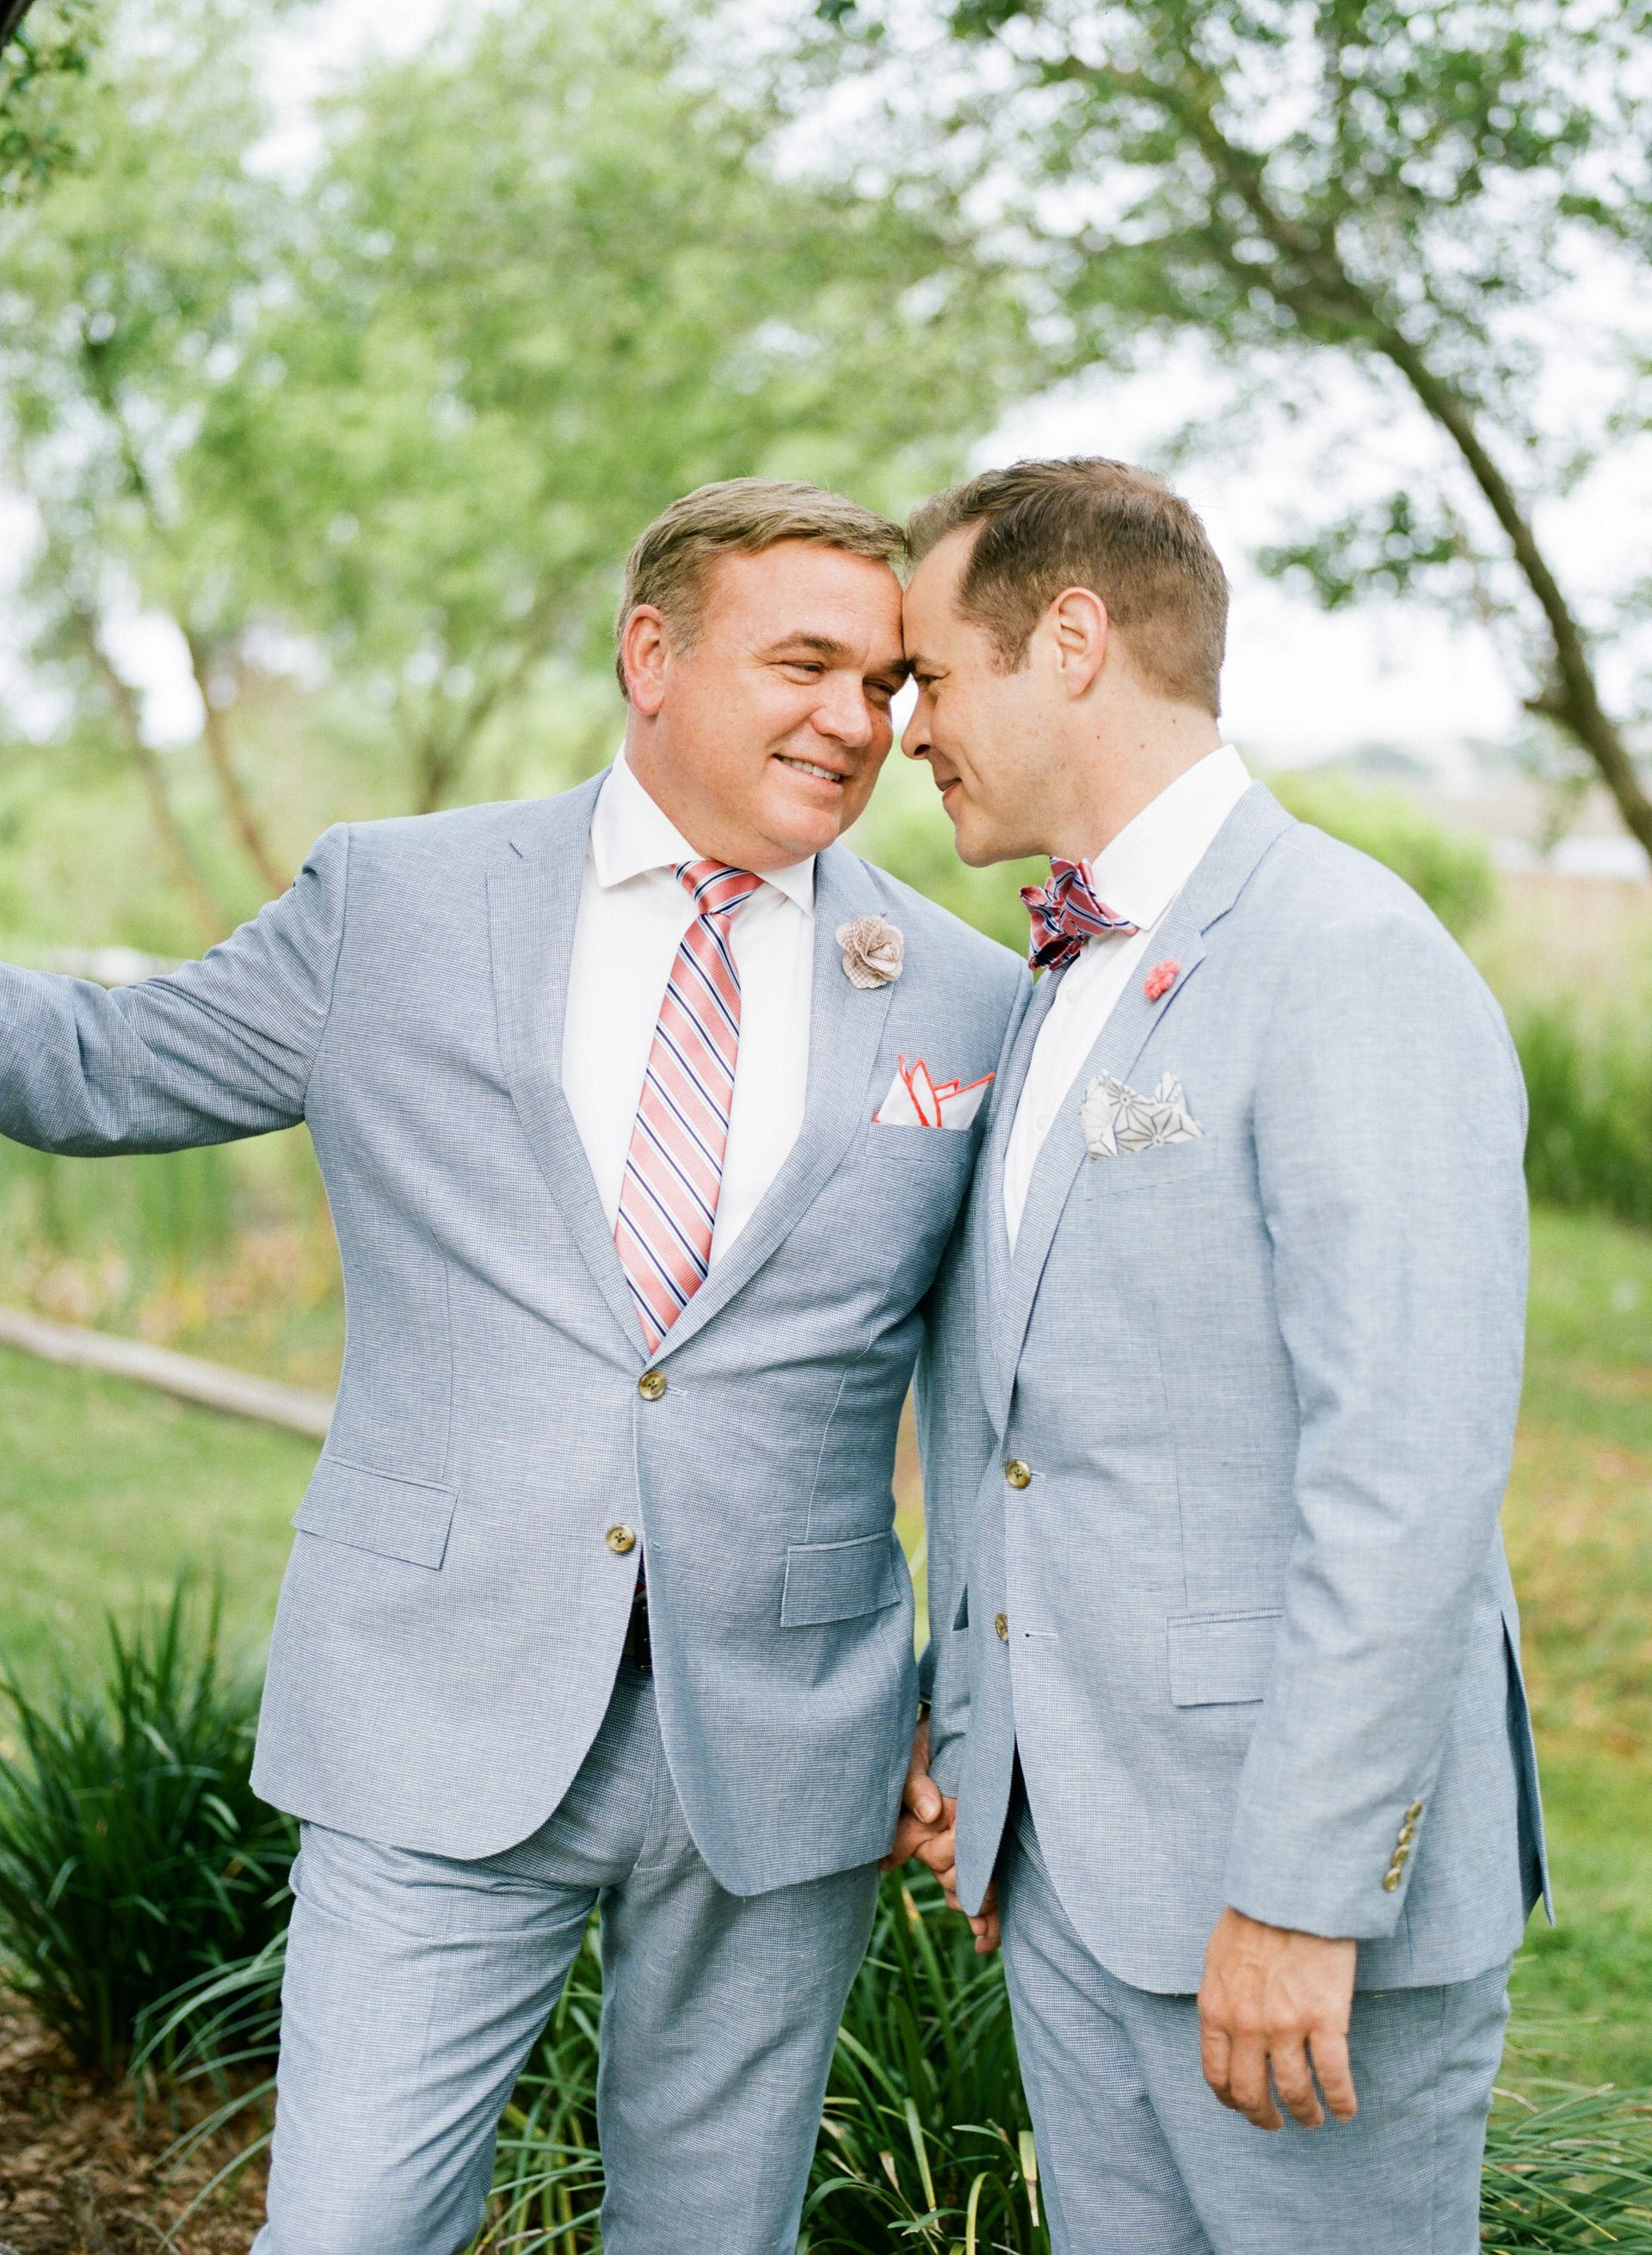 The Smarter Way to Wed | Pinterest | Blue linen suit, Grooms and ...